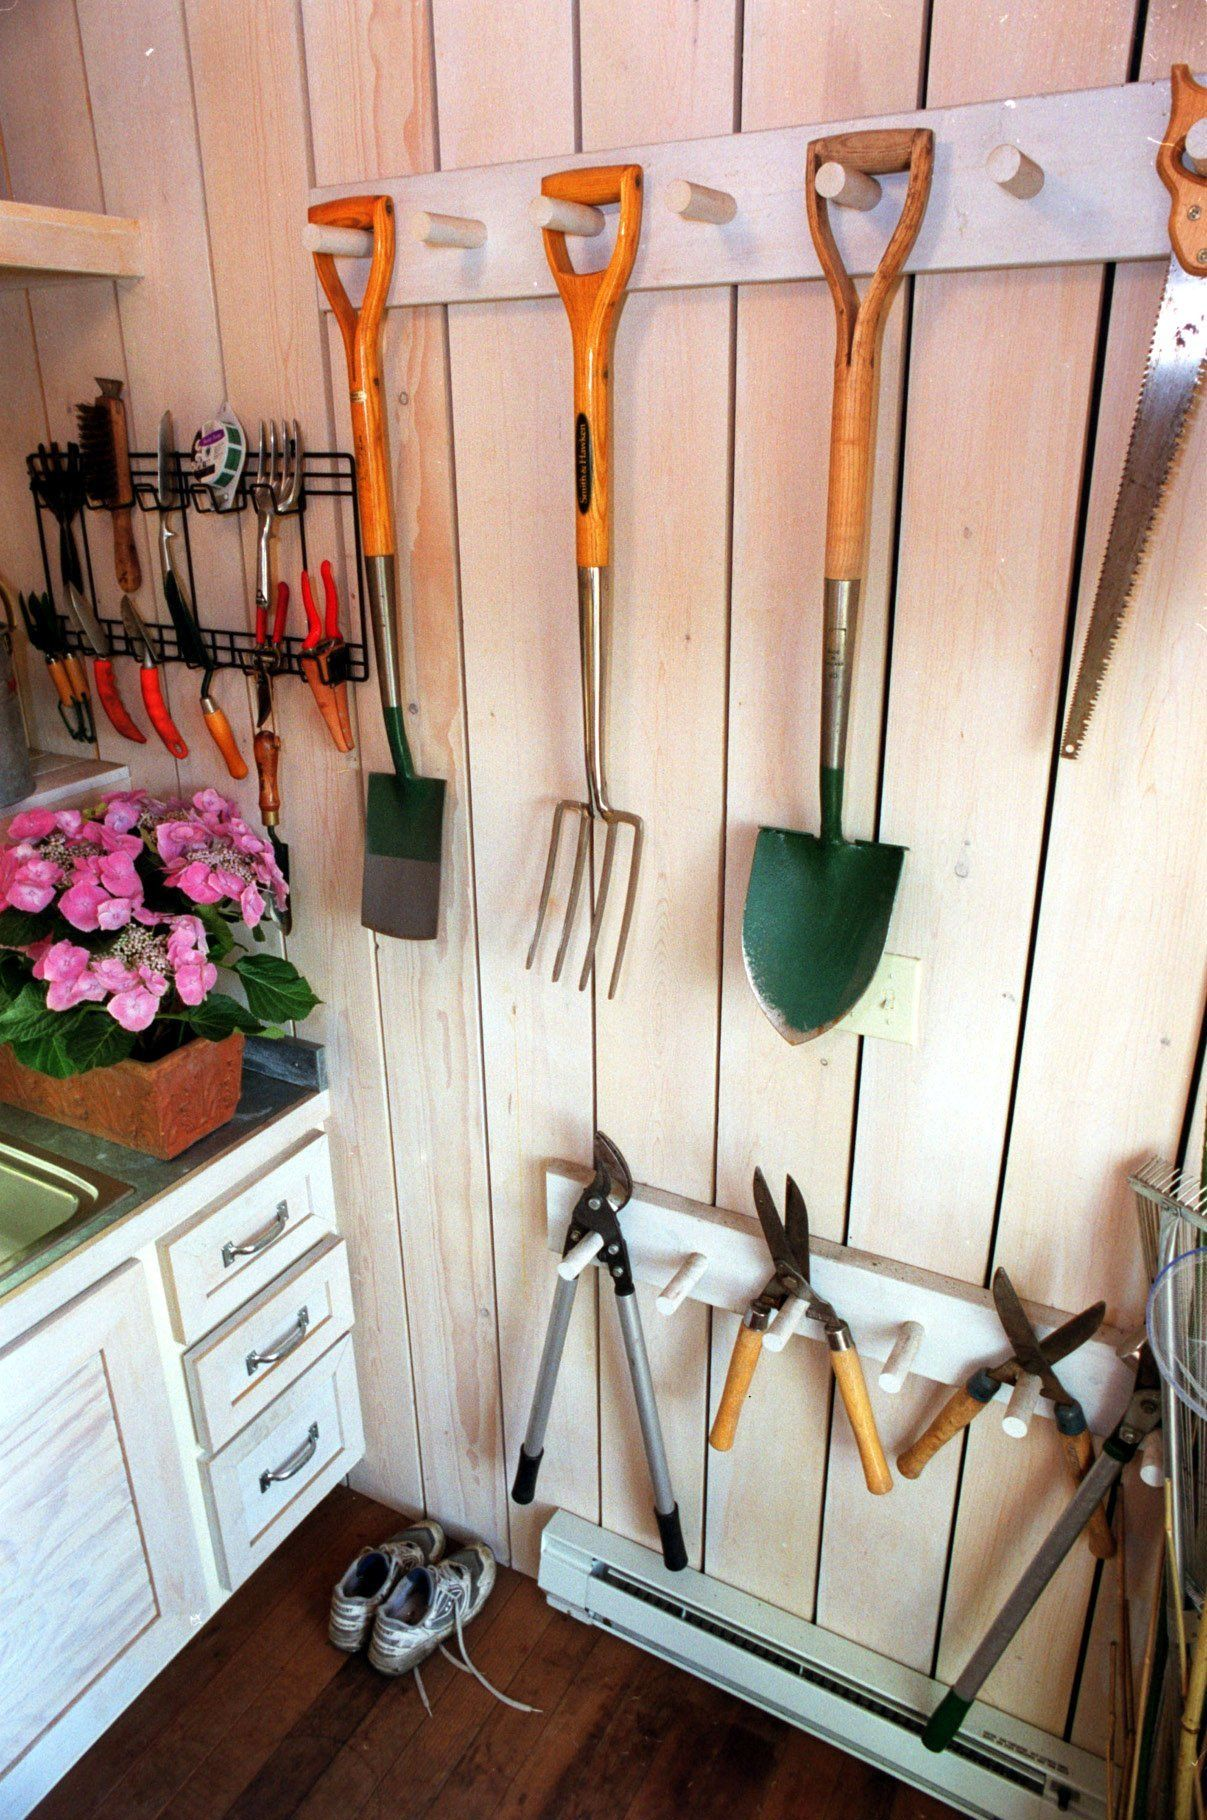 How To Organize Garage Tools